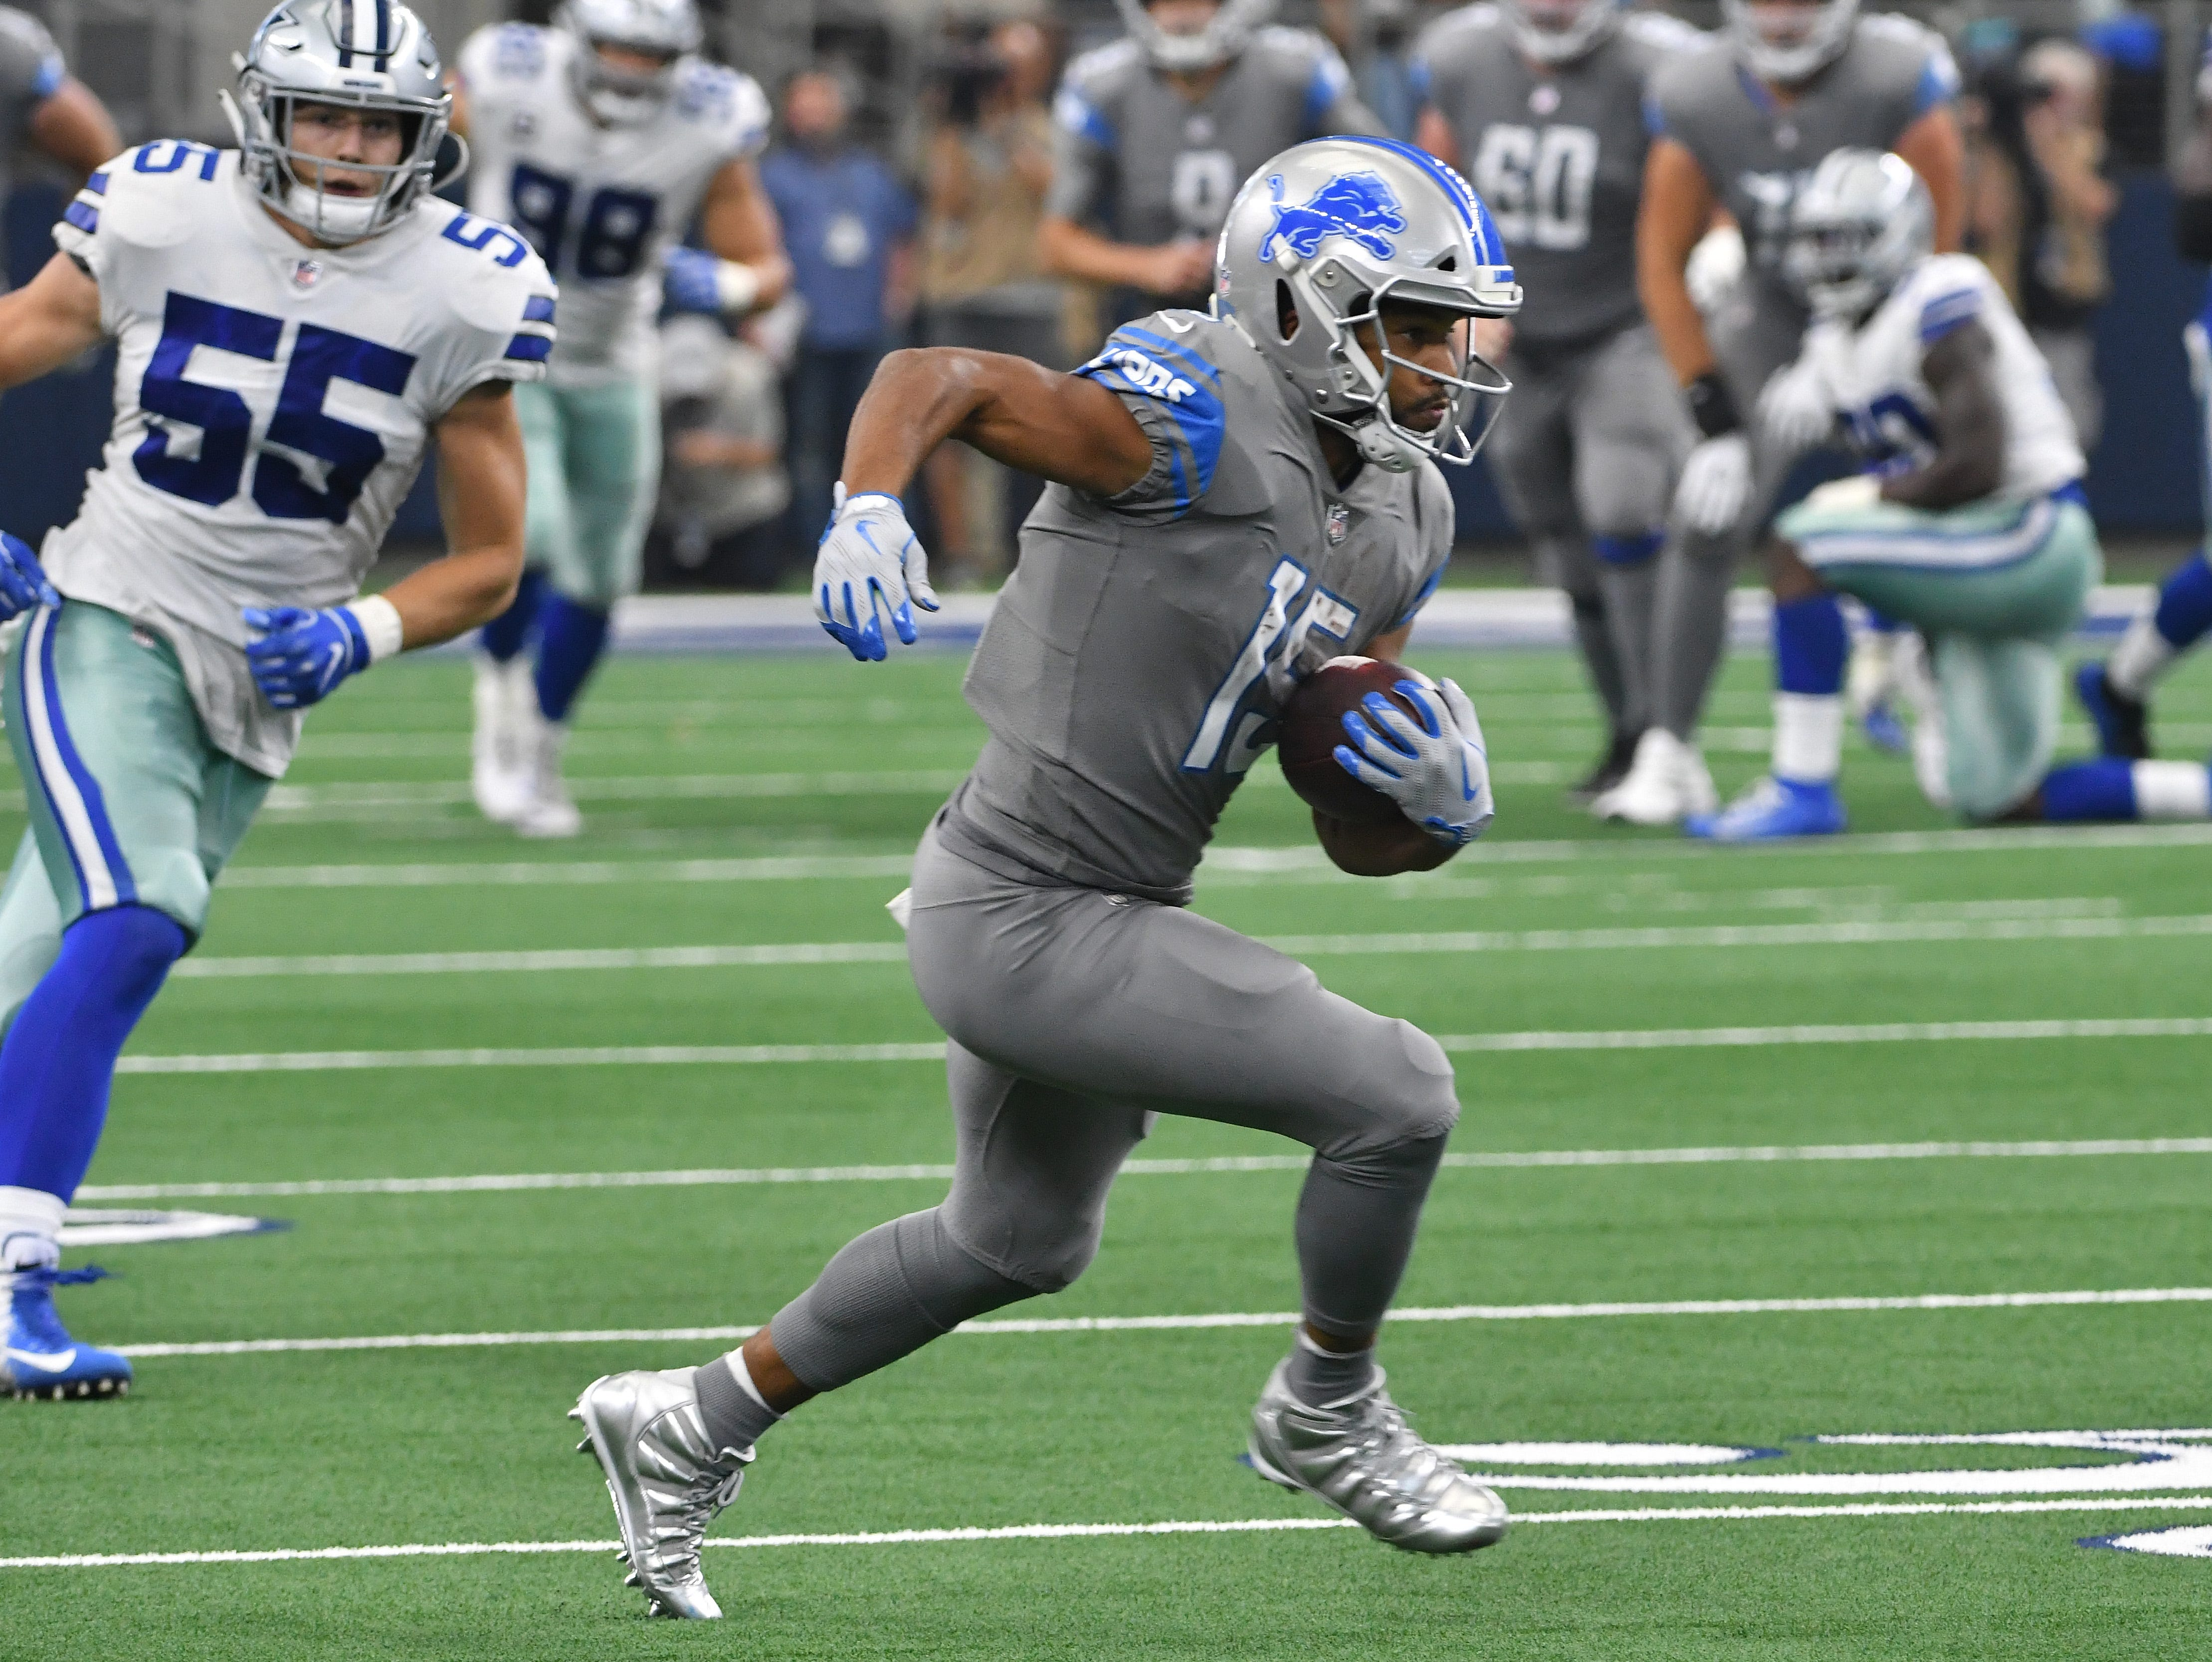 Lions wide receiver Golden Tate scrambles up field for a first down late in the fourth quarter.